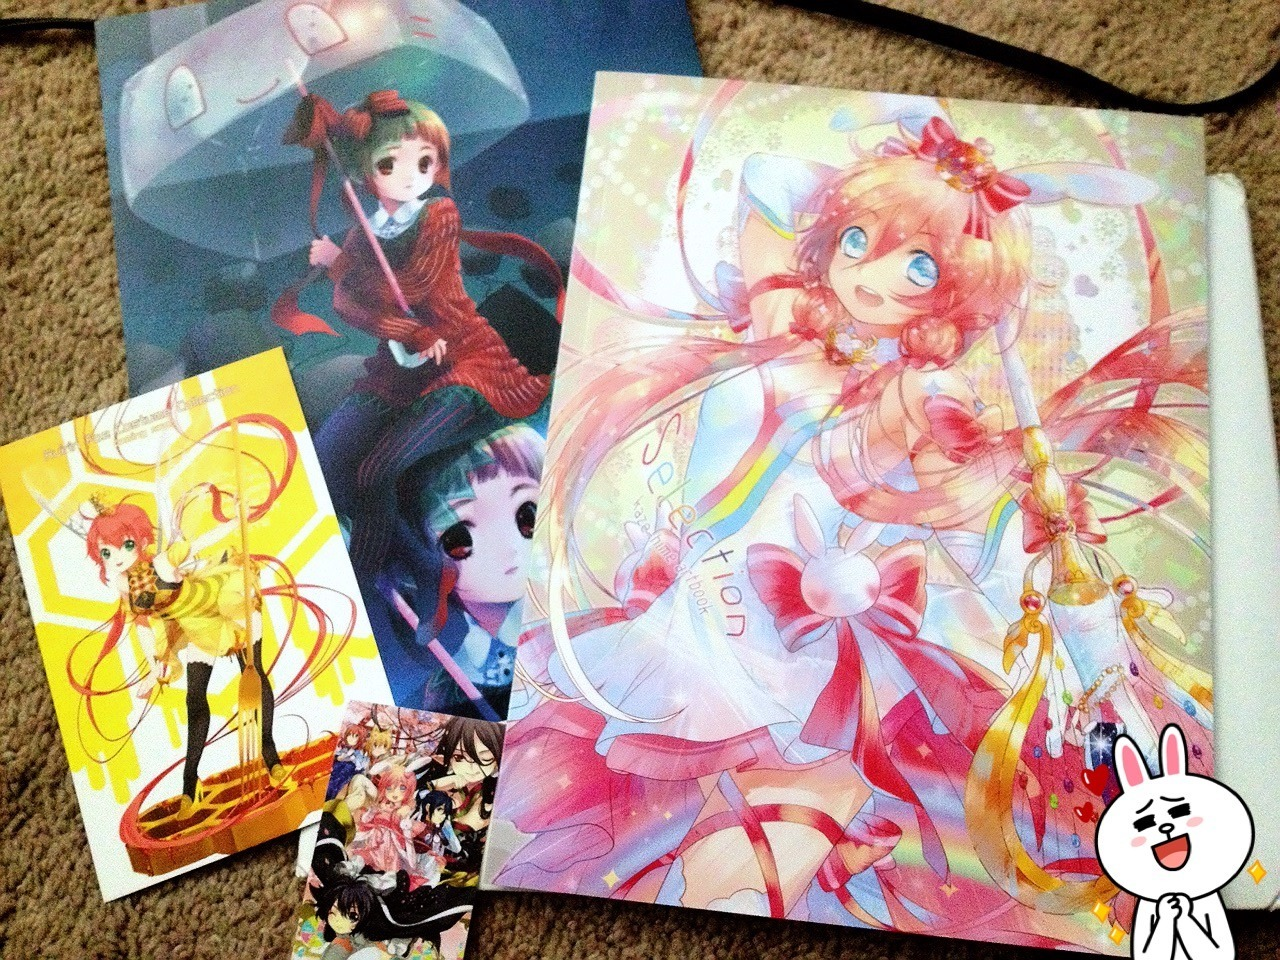 My artbook by Kaze-Hime/Soundless Wind came in today~The cover is really sparkly and stuff xD I'm so happy. You can check out her art here:http://kaze-hime.deviantart.com/and her tumblr here:http://soundlesswind.tumblr.com/